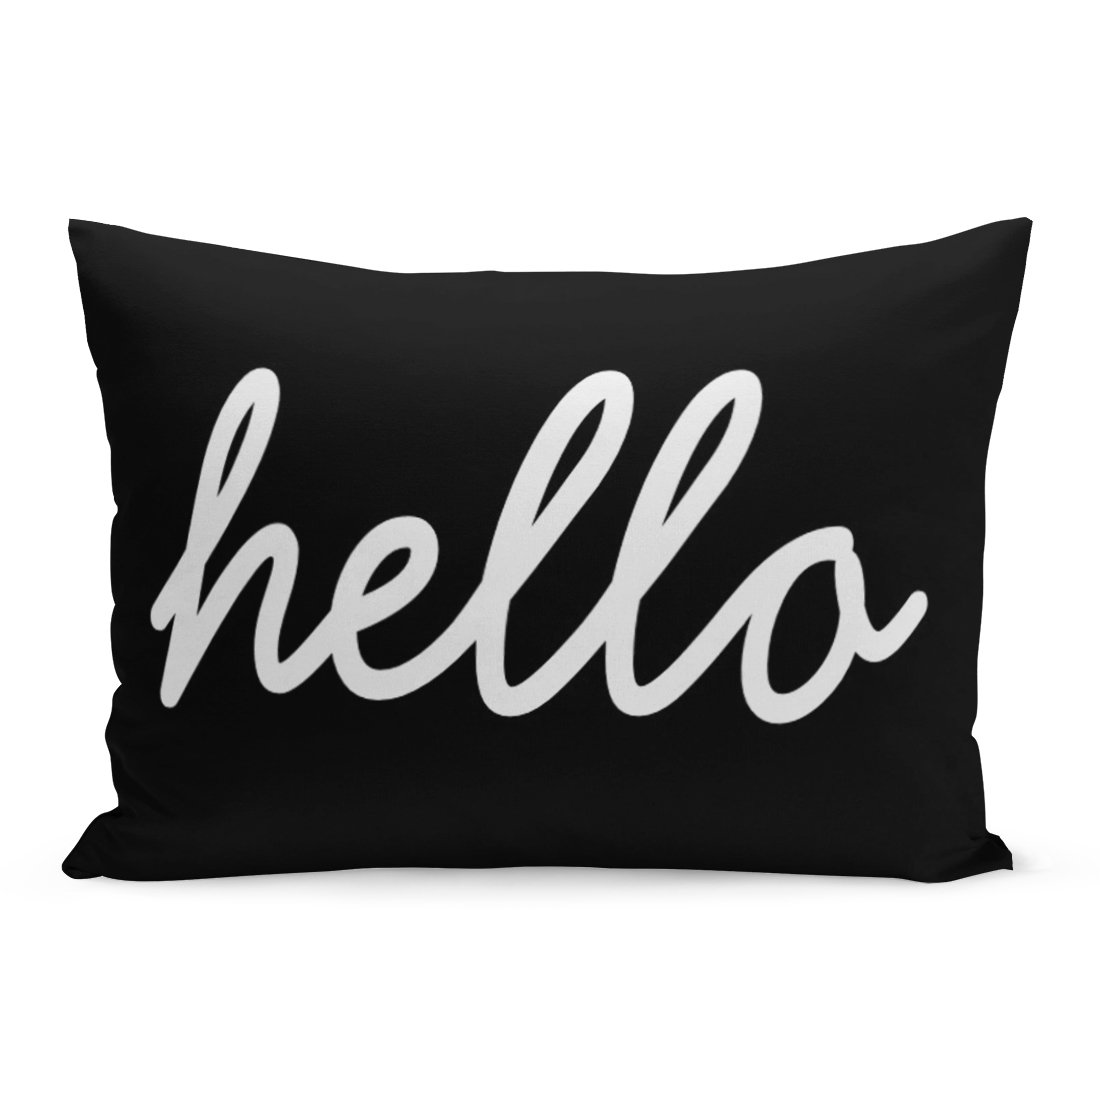 Aikul Throw Pillow Covers Africa Contemporary African Design Urban Folklore Pillow Case Cushion Cover Lumbar Pillowcase Decoration for Couch Sofa Bed Car, 20 x 26 inchs